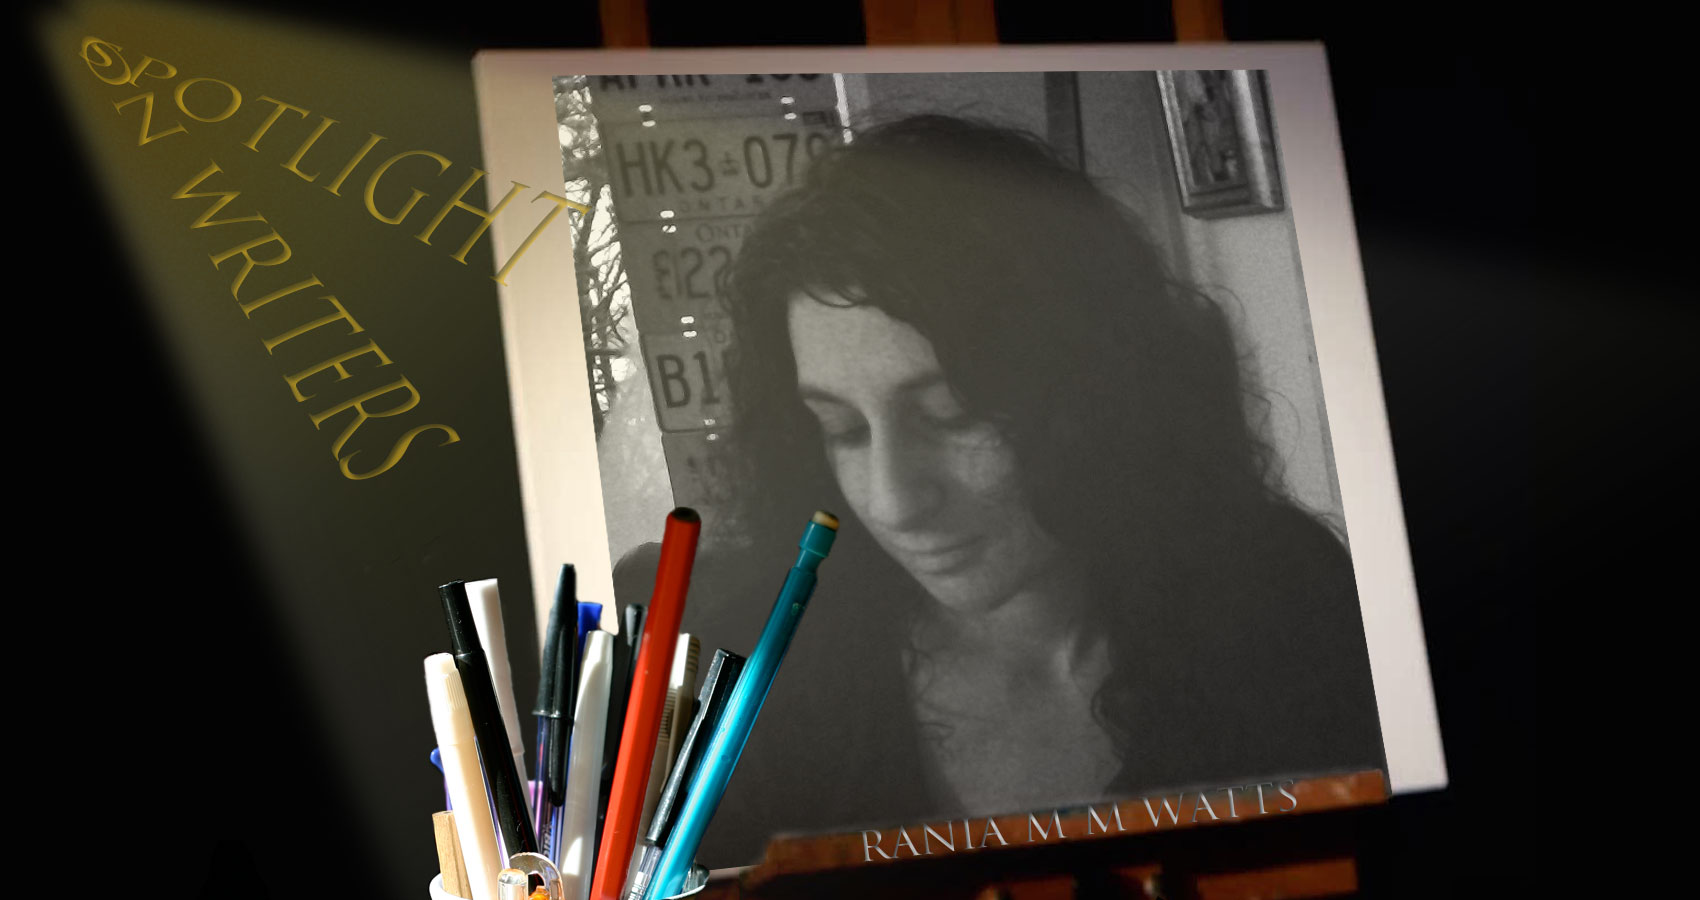 Spotlight On Writers - Rania M M Watts at Spillwords.com